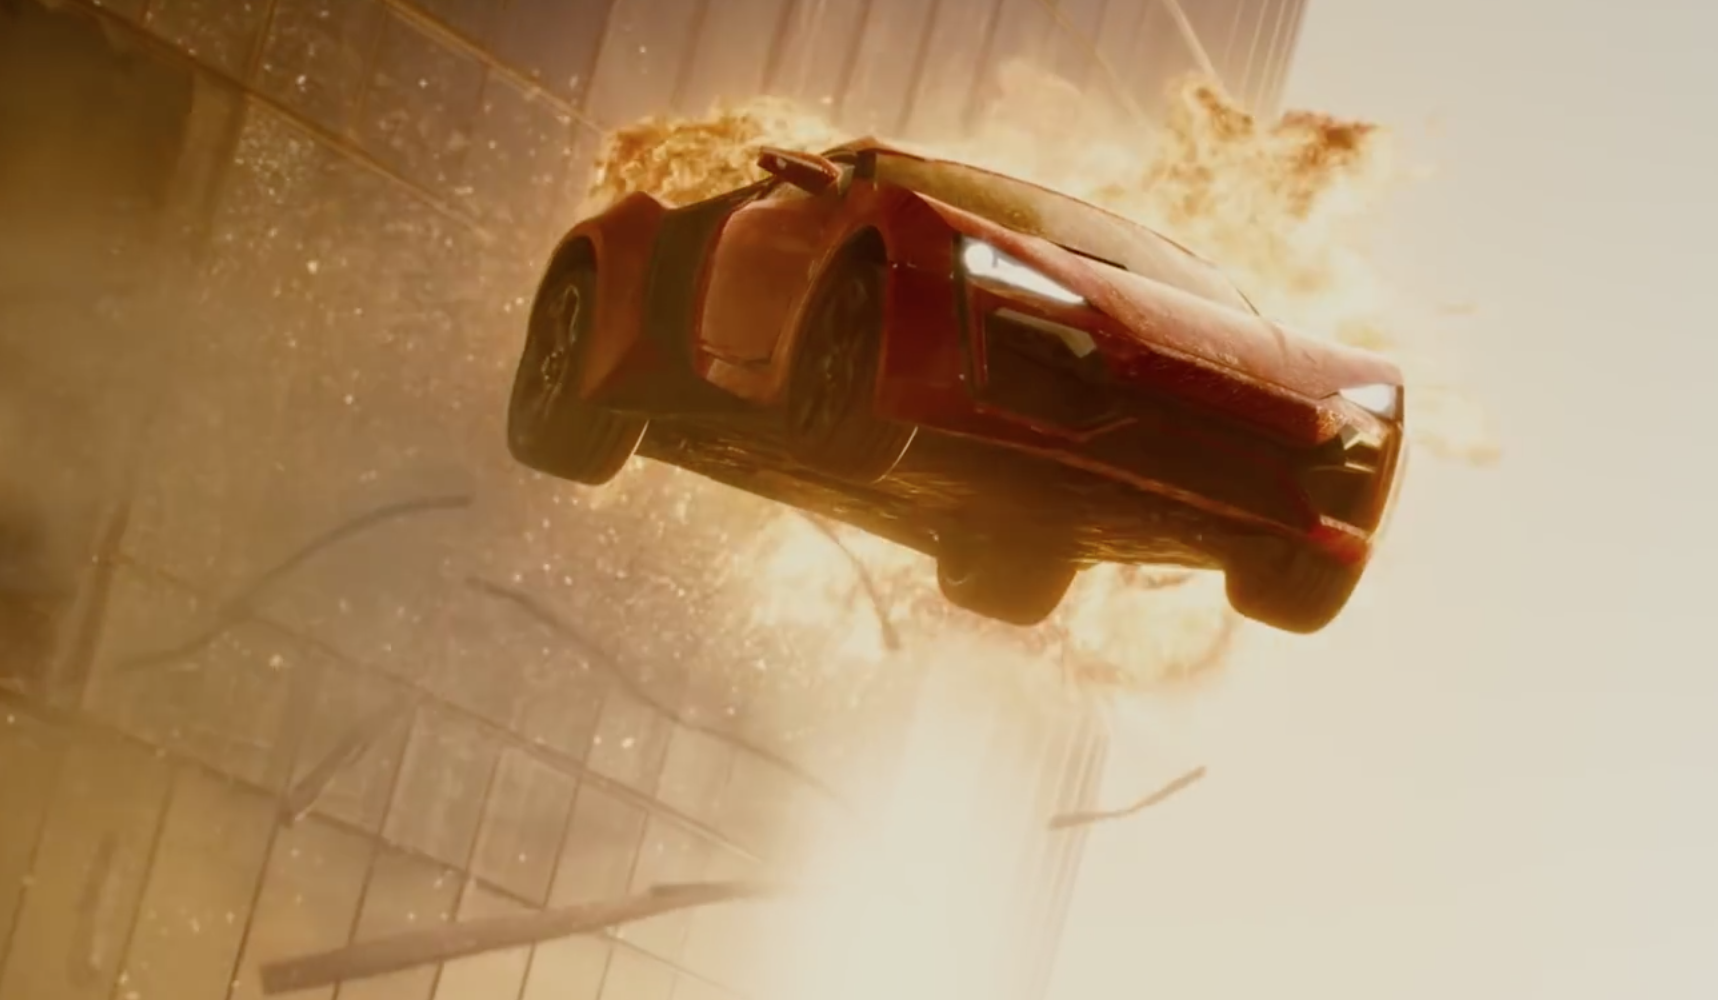 Fast And Furious Series Has Clocked Up £419m Of Damage – So Far